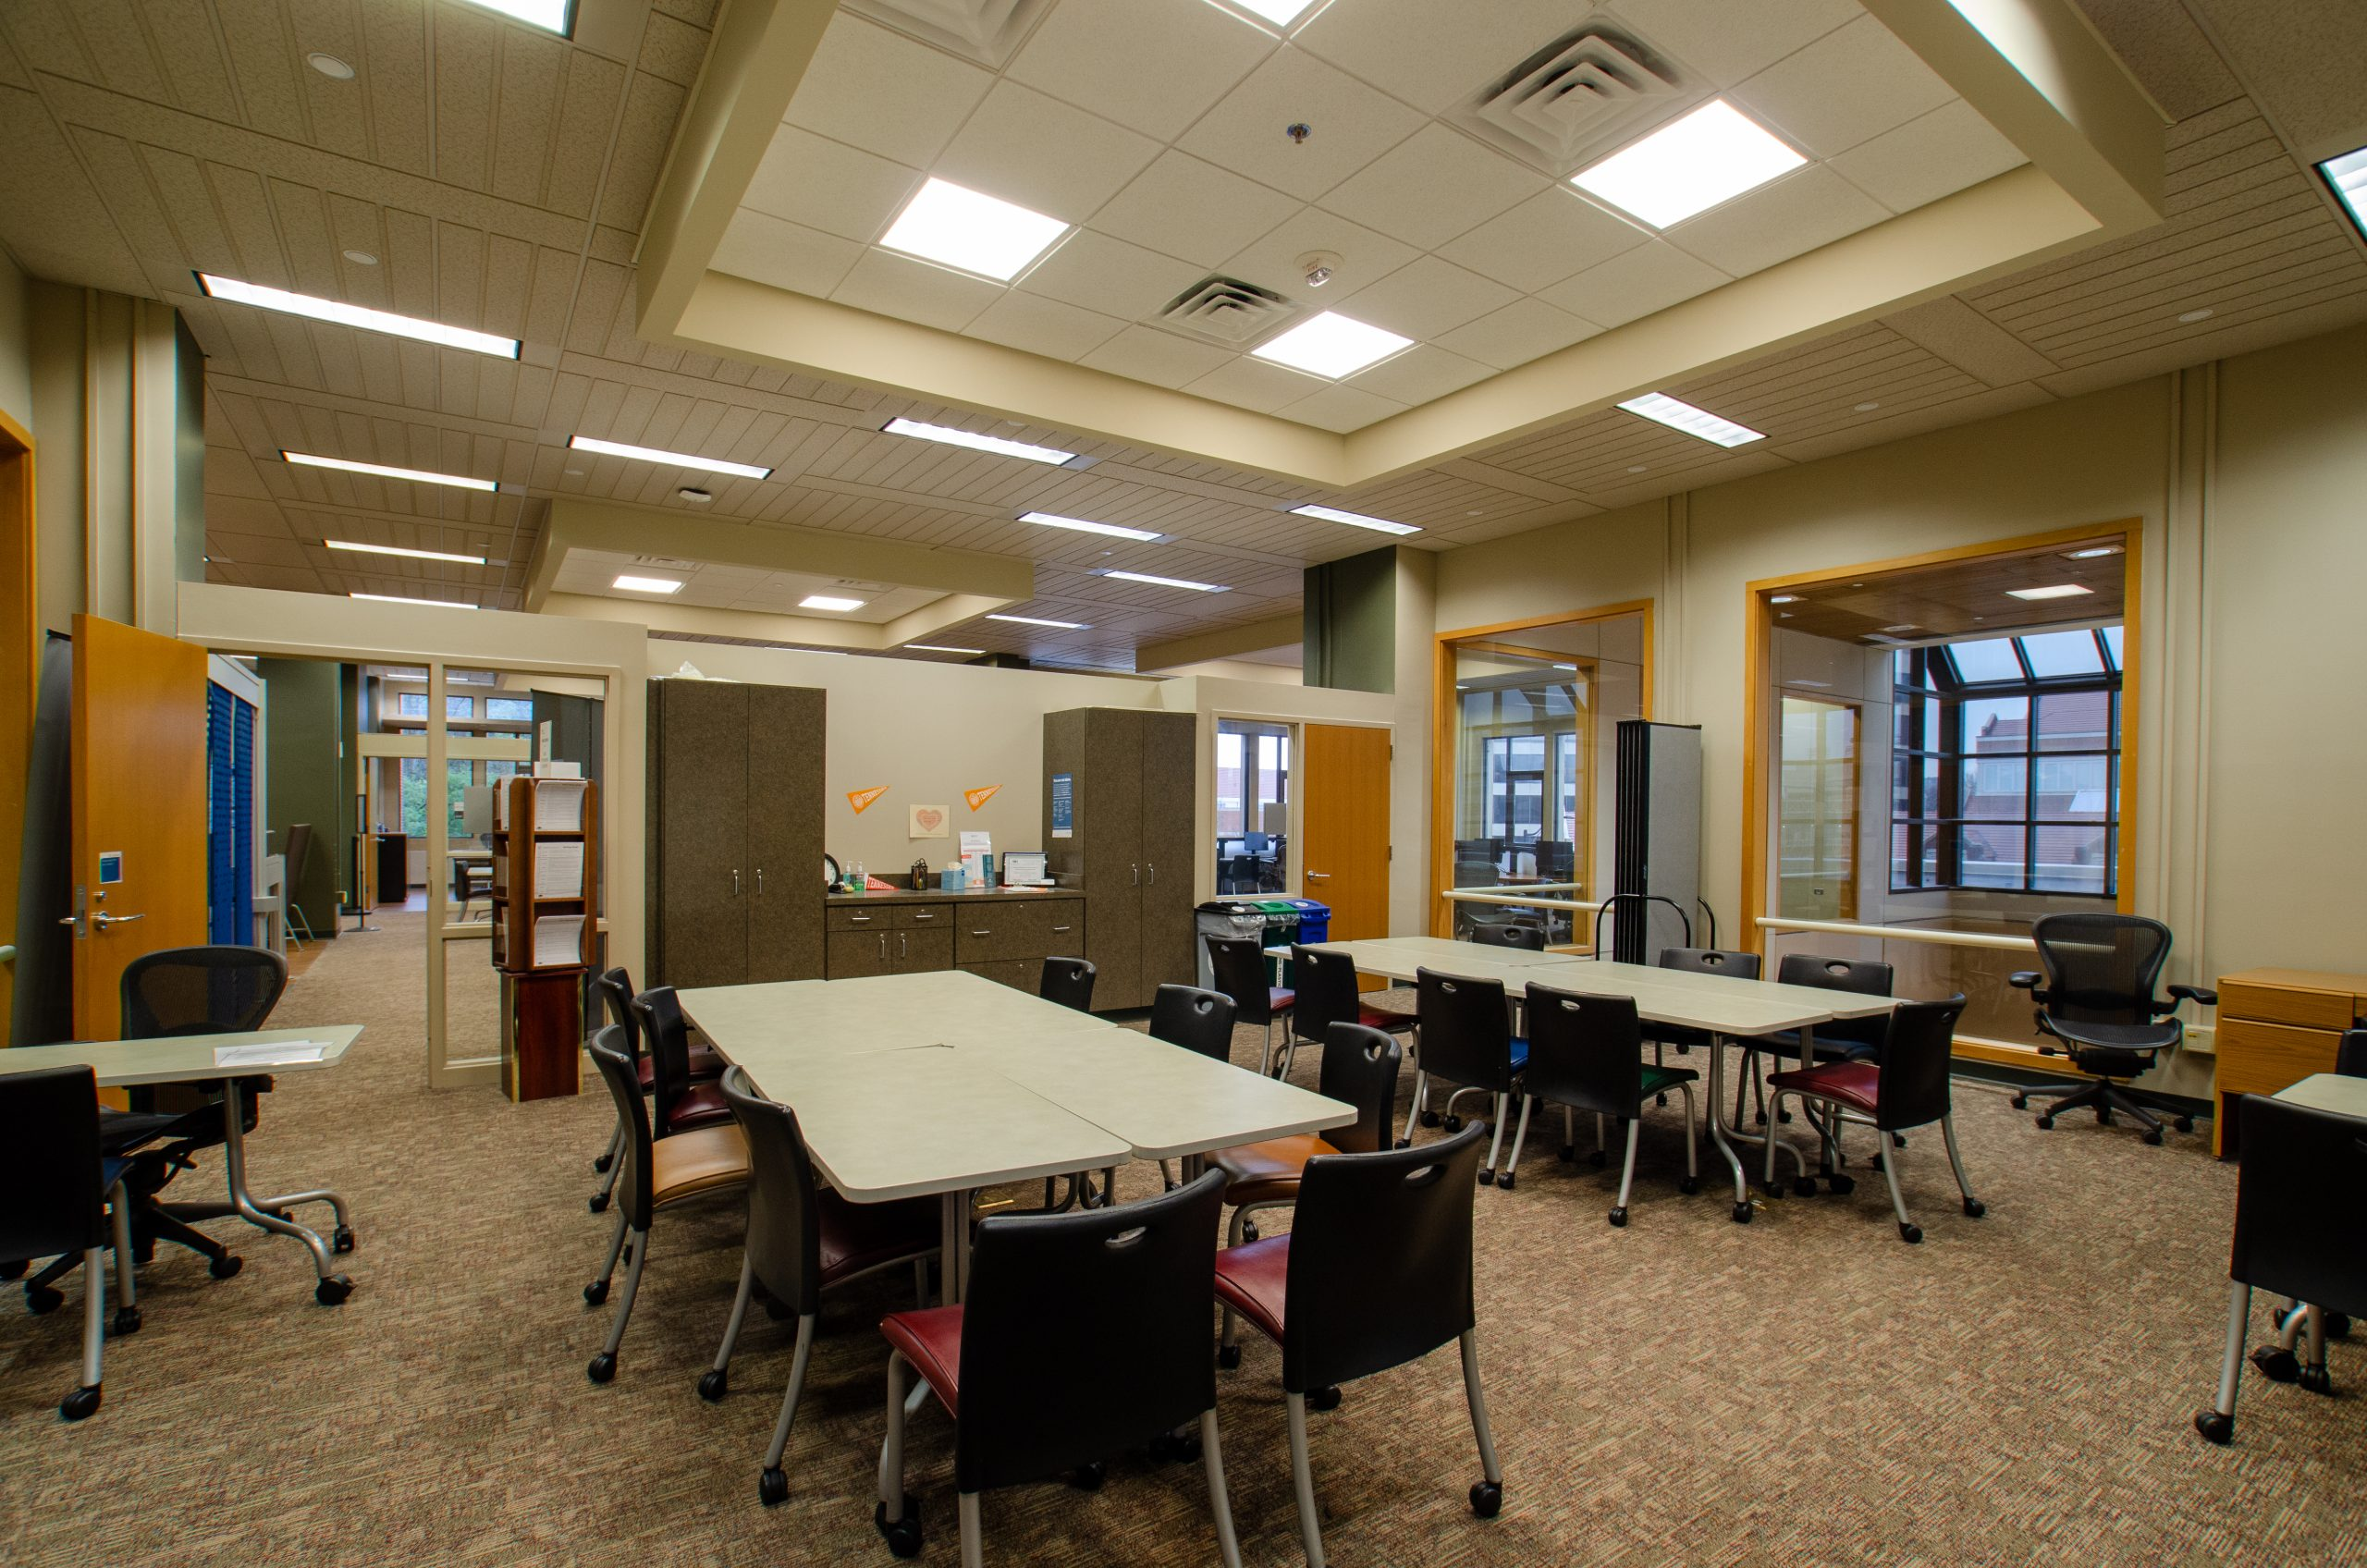 The Student Success Center in the commons at hodges library